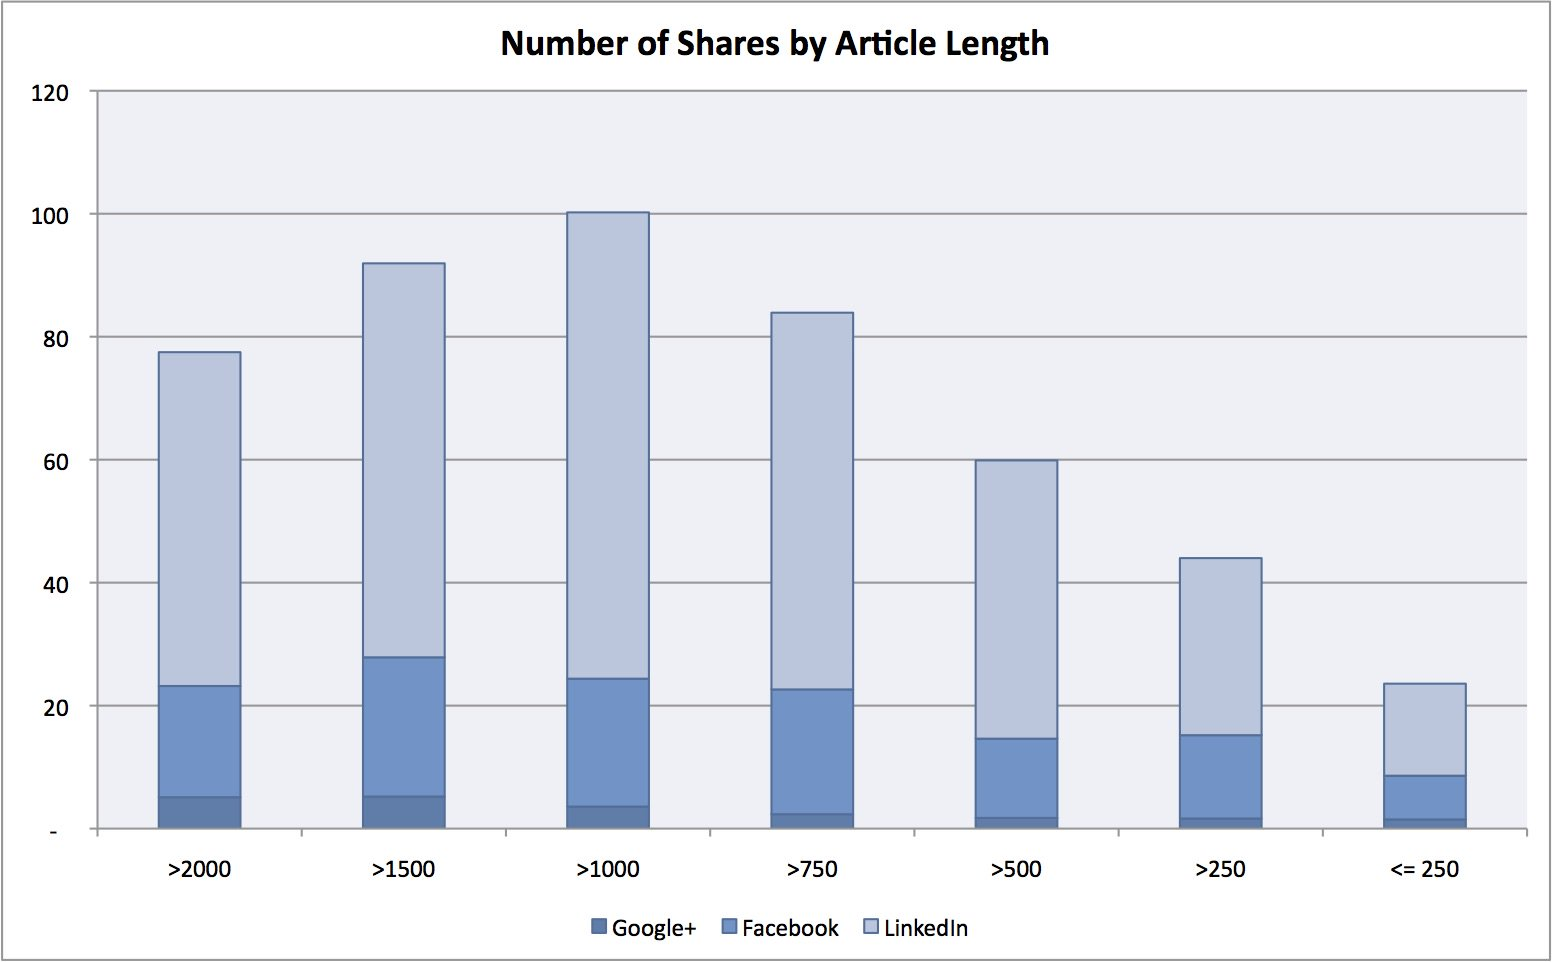 Shares by Article Length